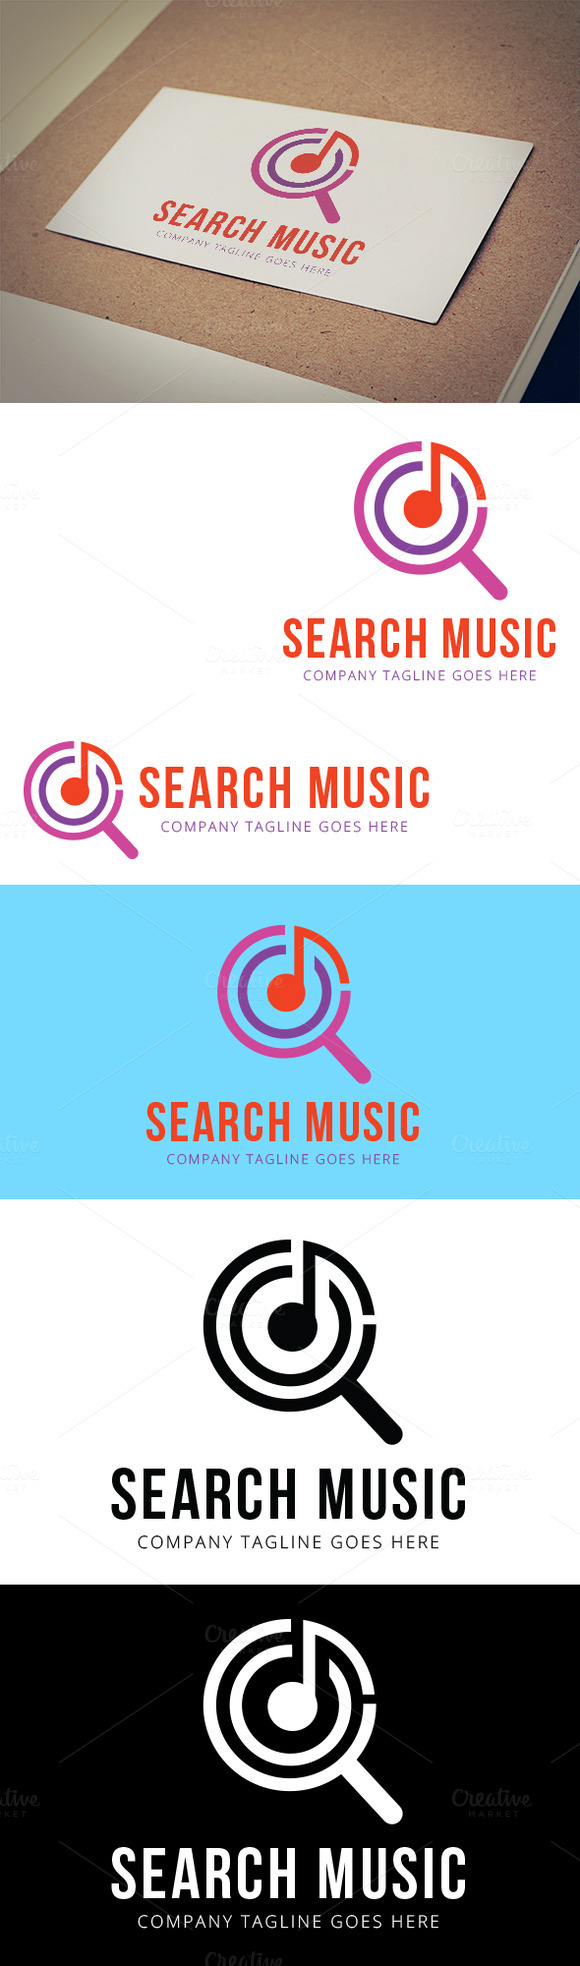 Search Music Logo Template